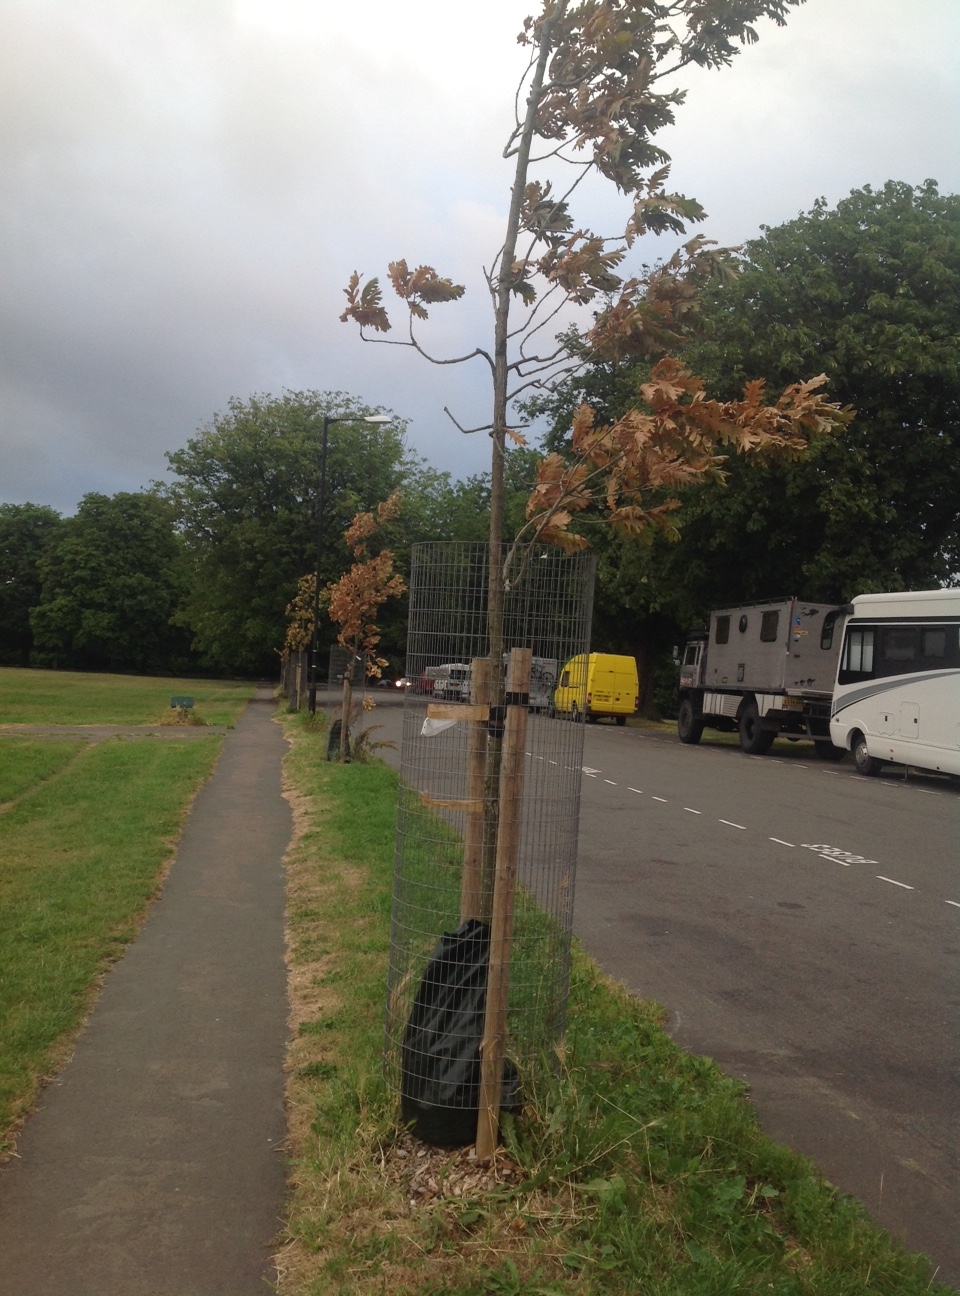 Urgent help needed to water new trees – an update – more new street trees dying